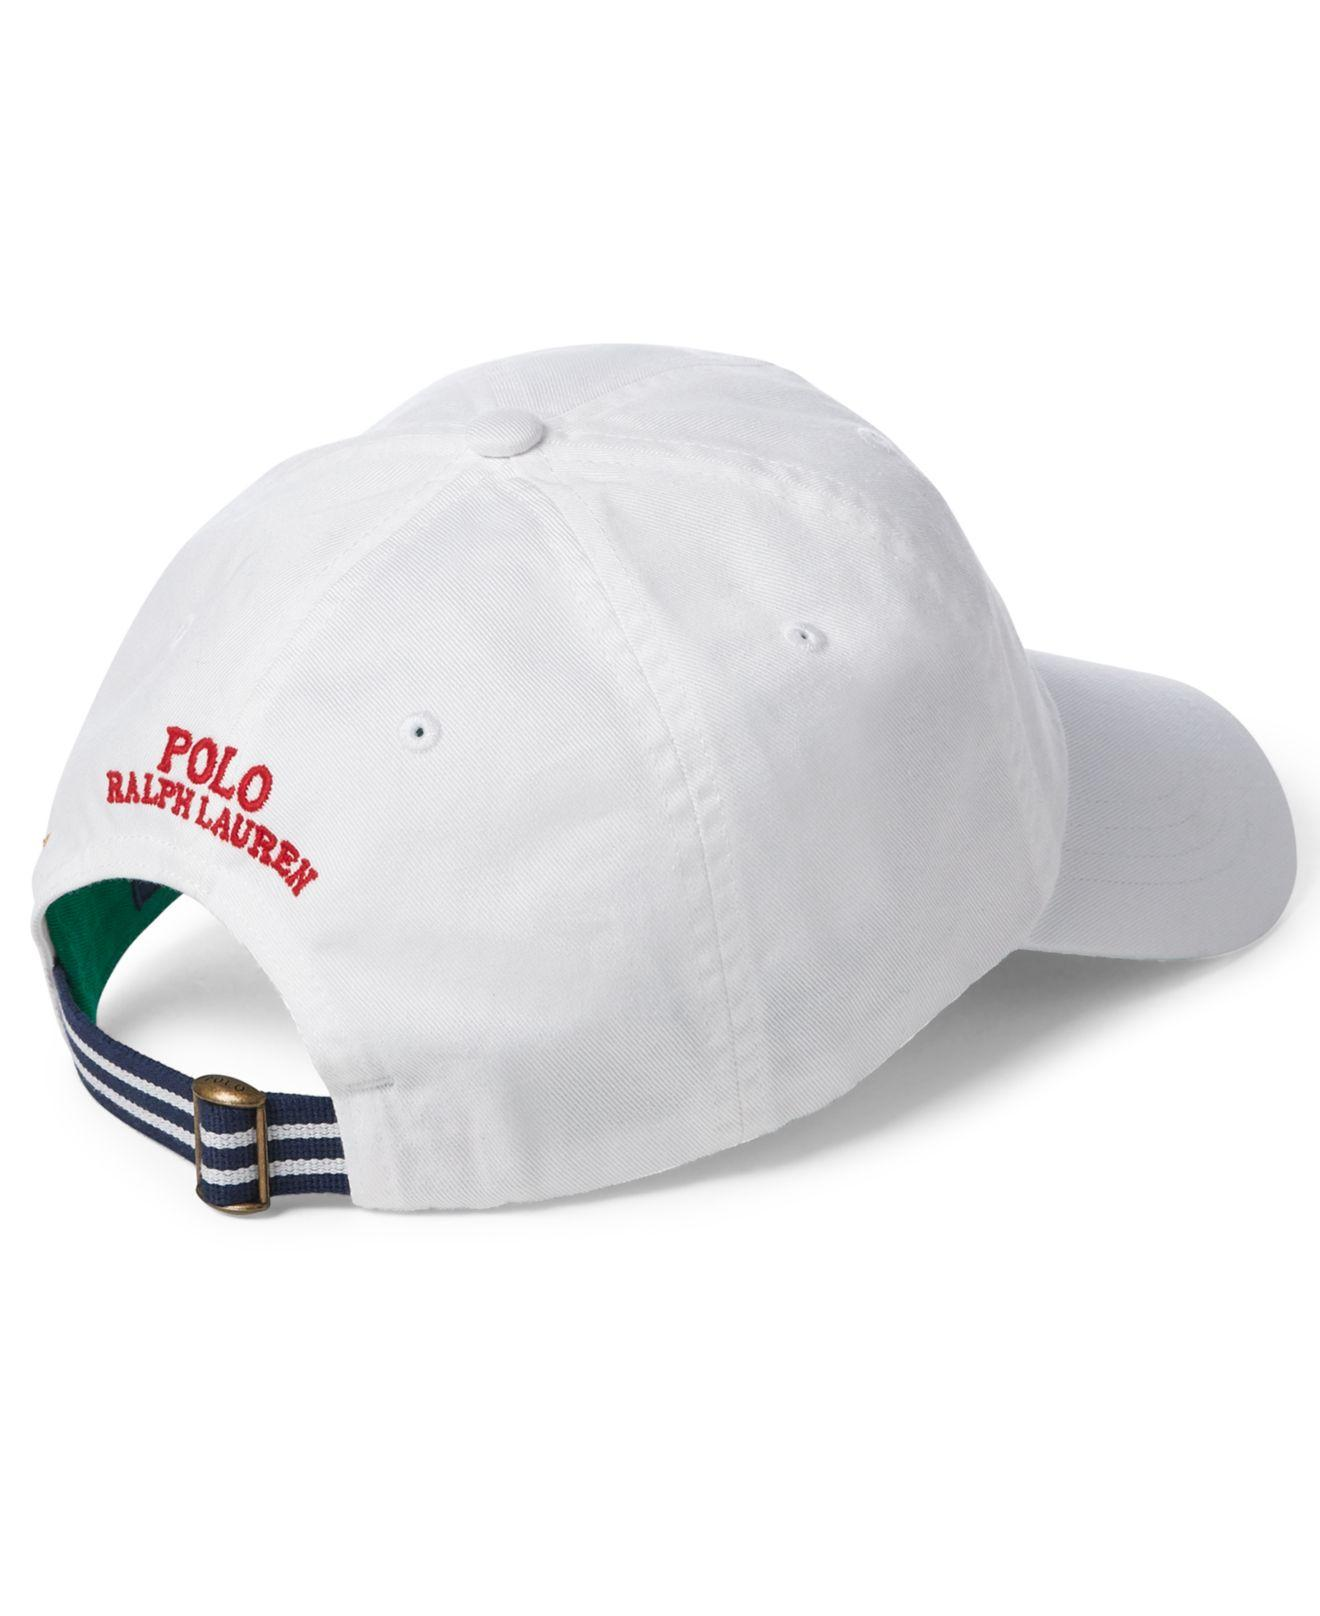 5a78b23643b40 Lyst - Polo Ralph Lauren Chino Baseball Cap in White for Men - Save 24%